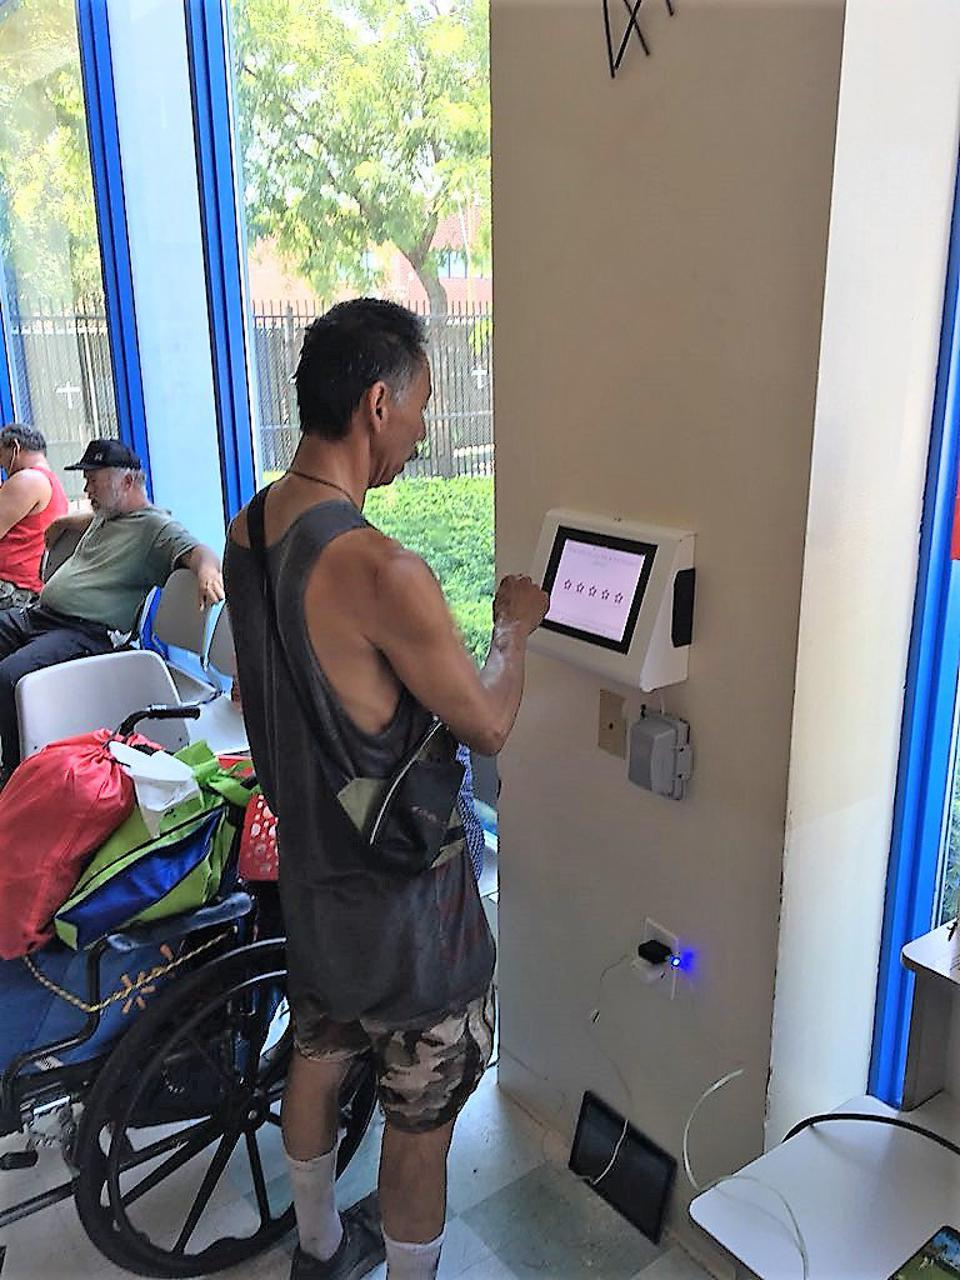 Patron uses Pulse For Good kiosk to offer feedback.